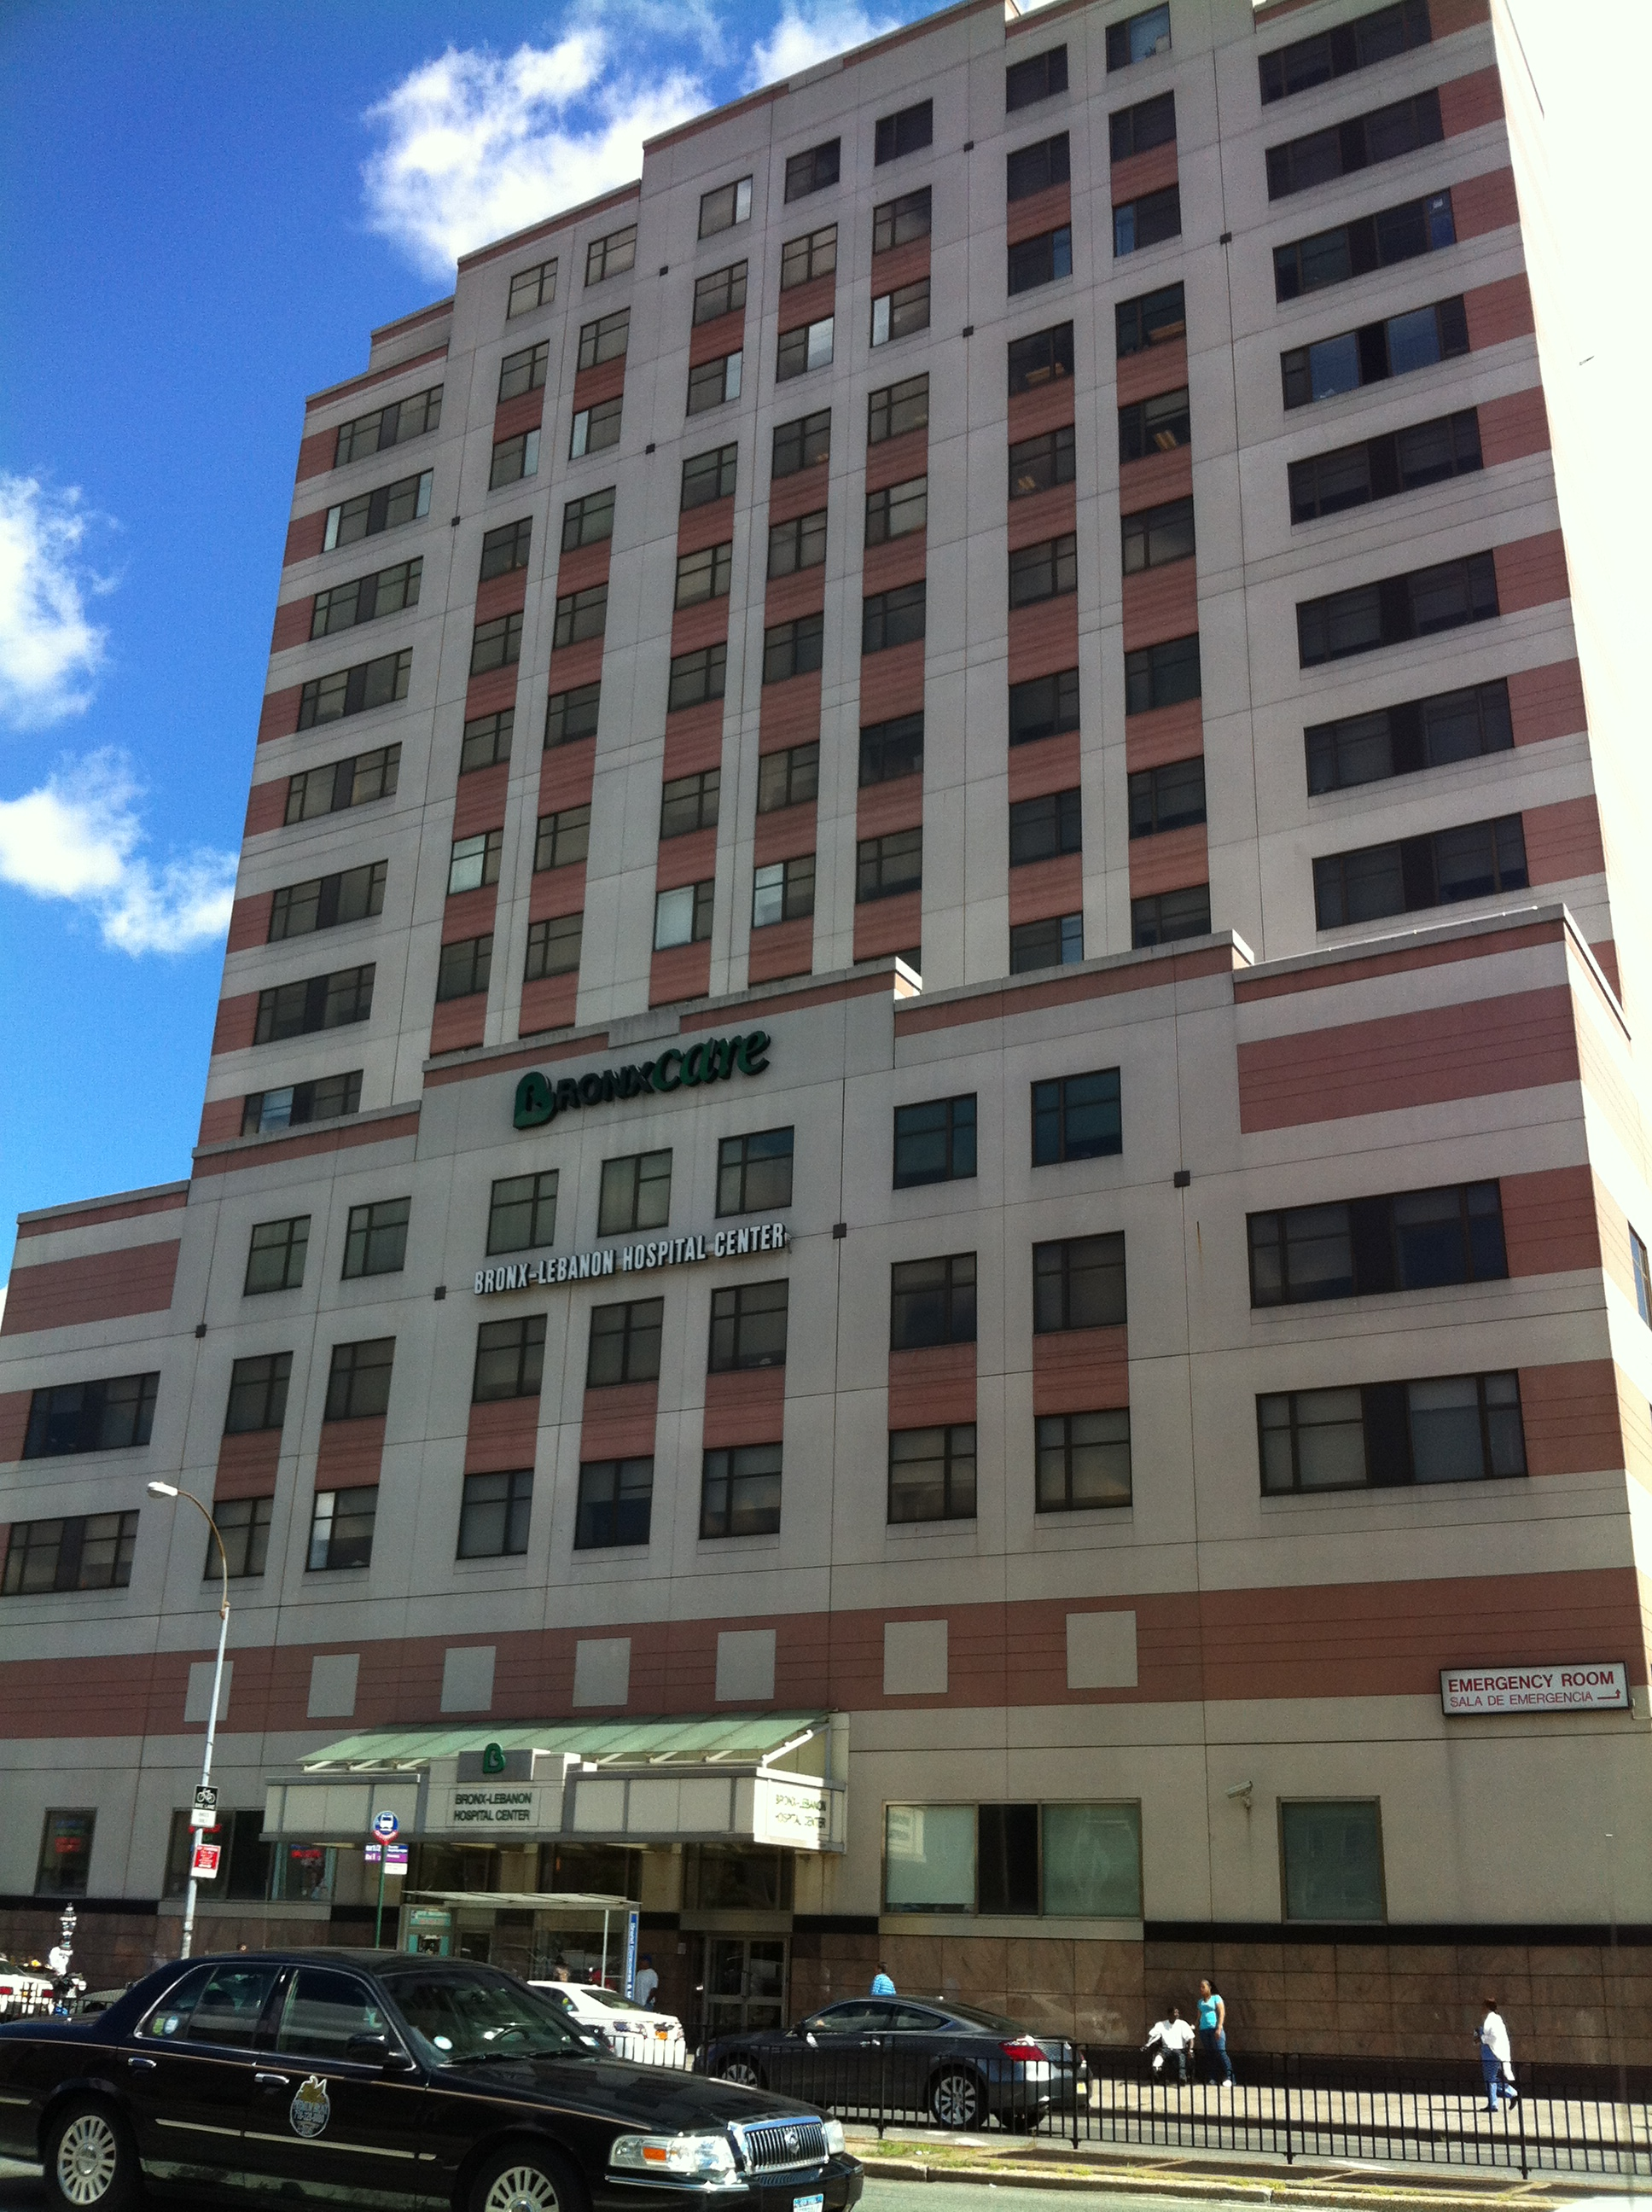 Bronx-Lebanon Hospital, one of AUC's affiliated clinical rotation sites